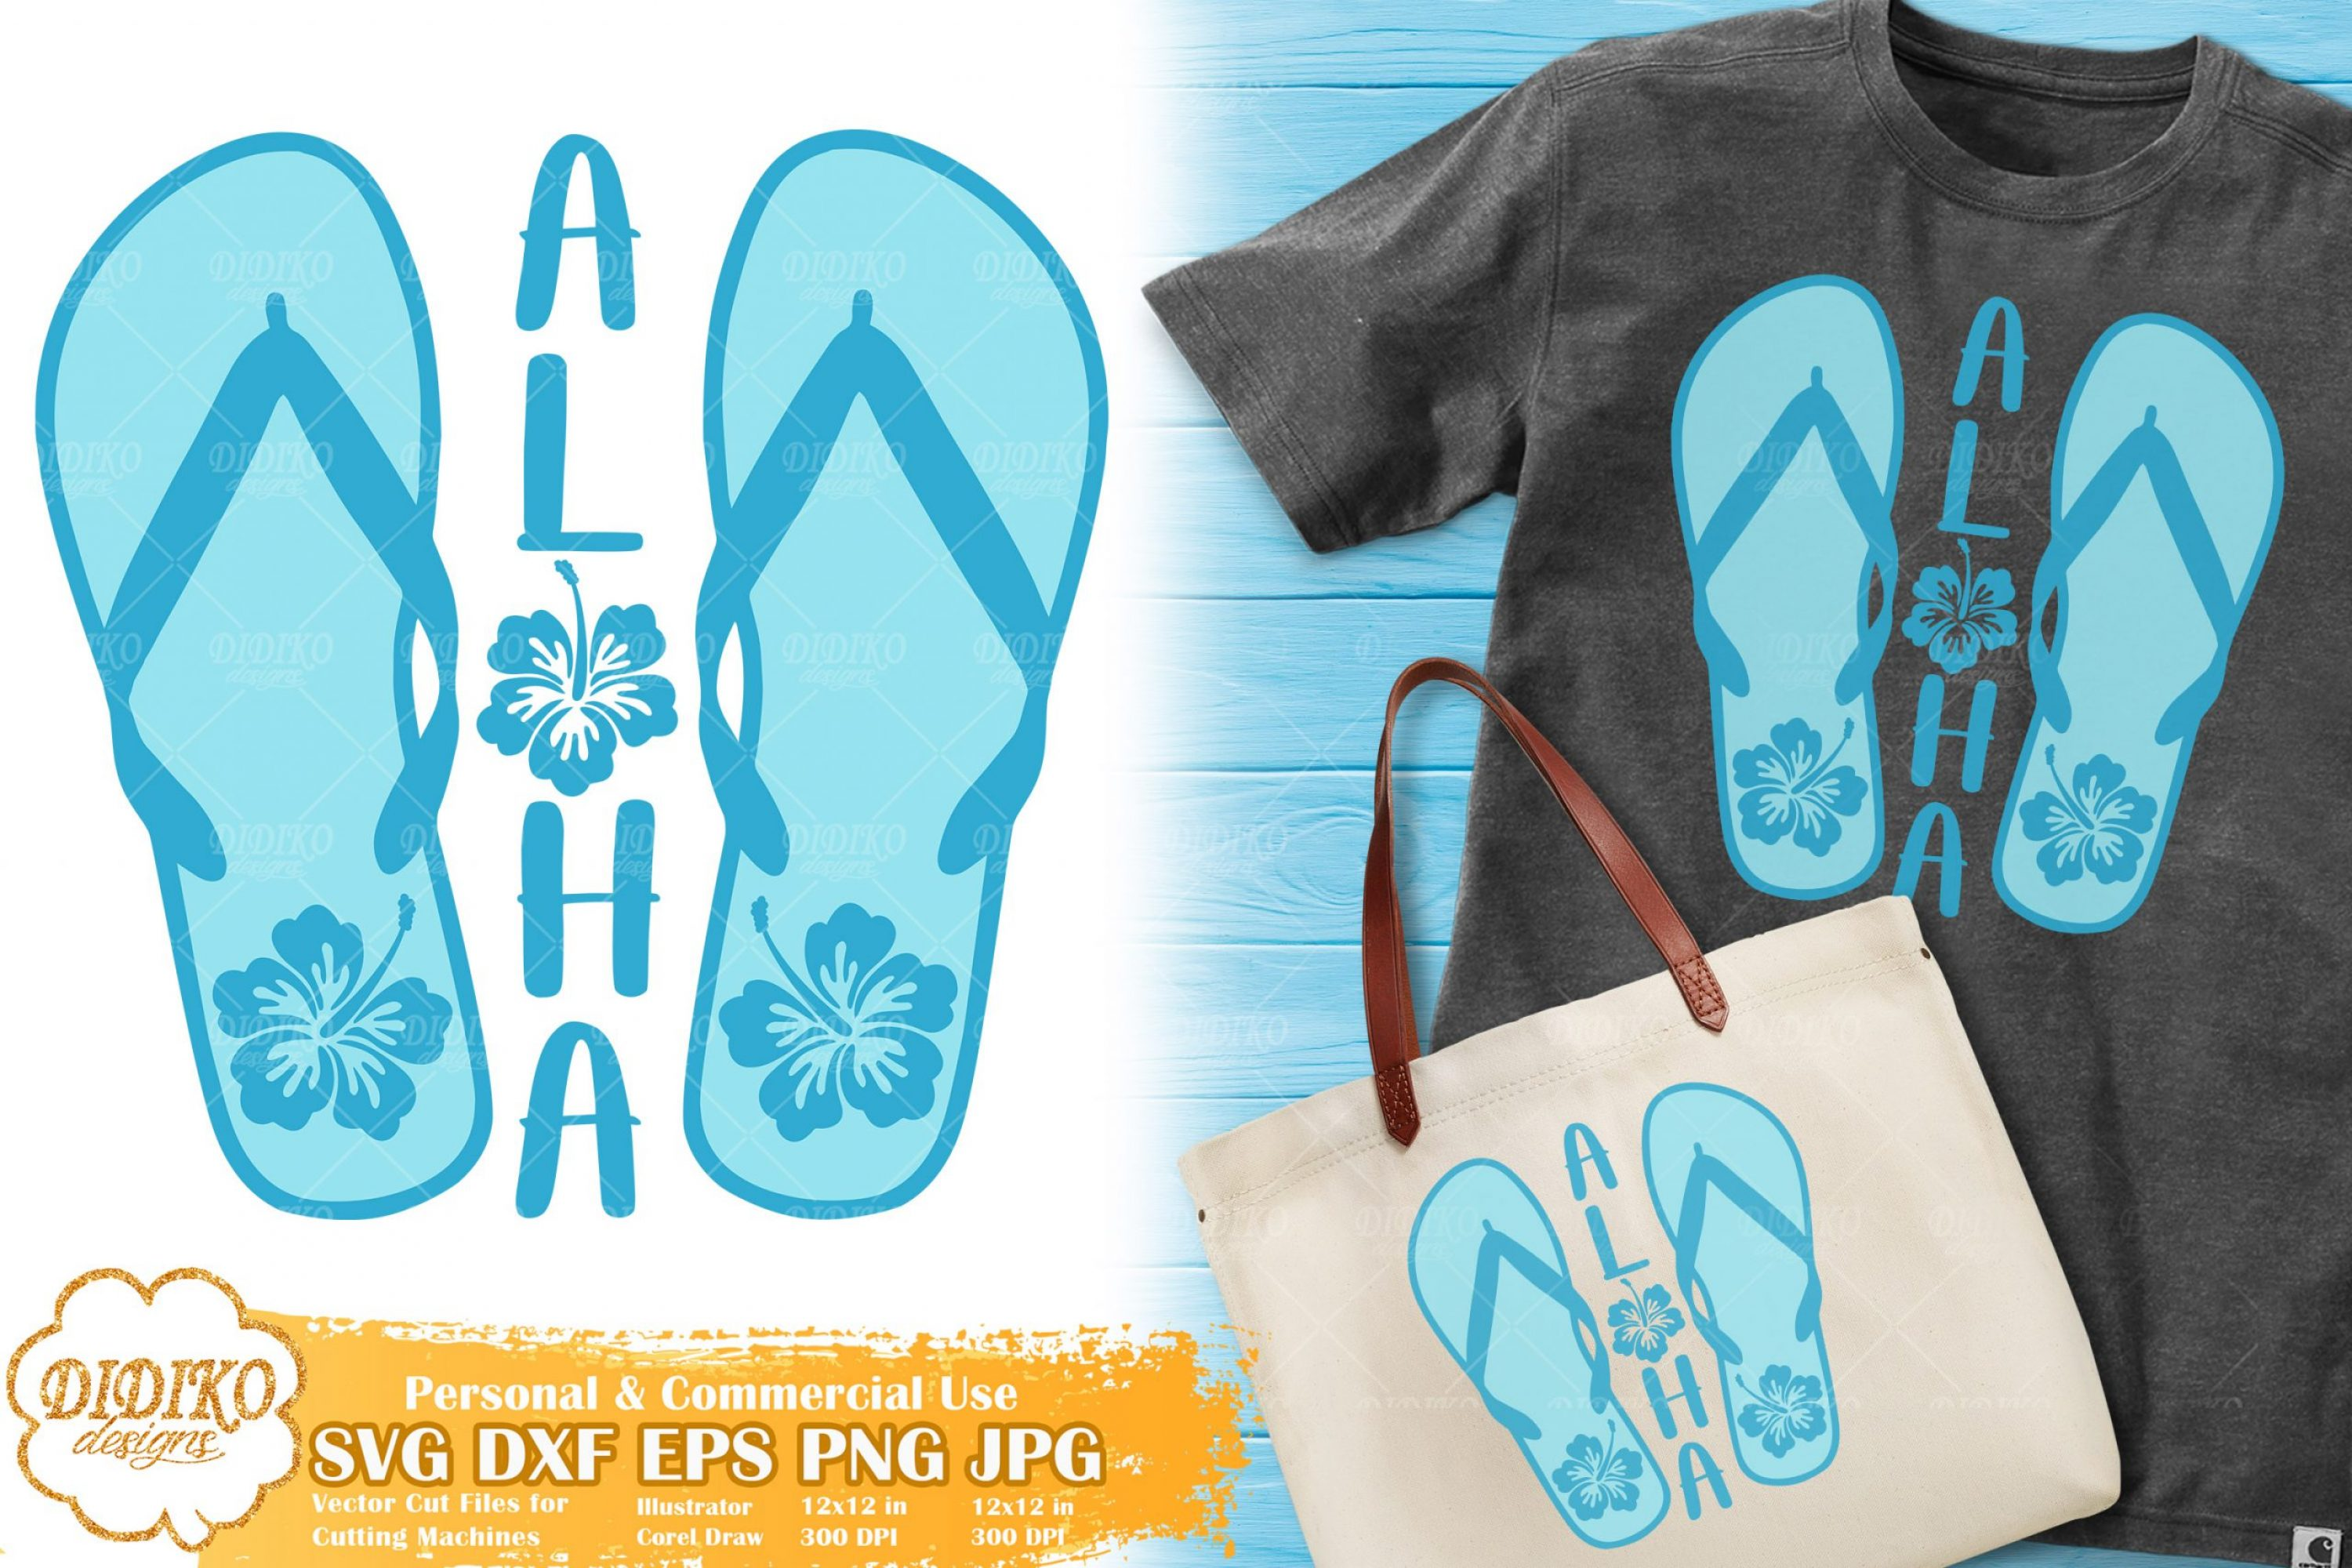 Aloha Flip Flops SVG | Flip Flops Saying SVG Cut File